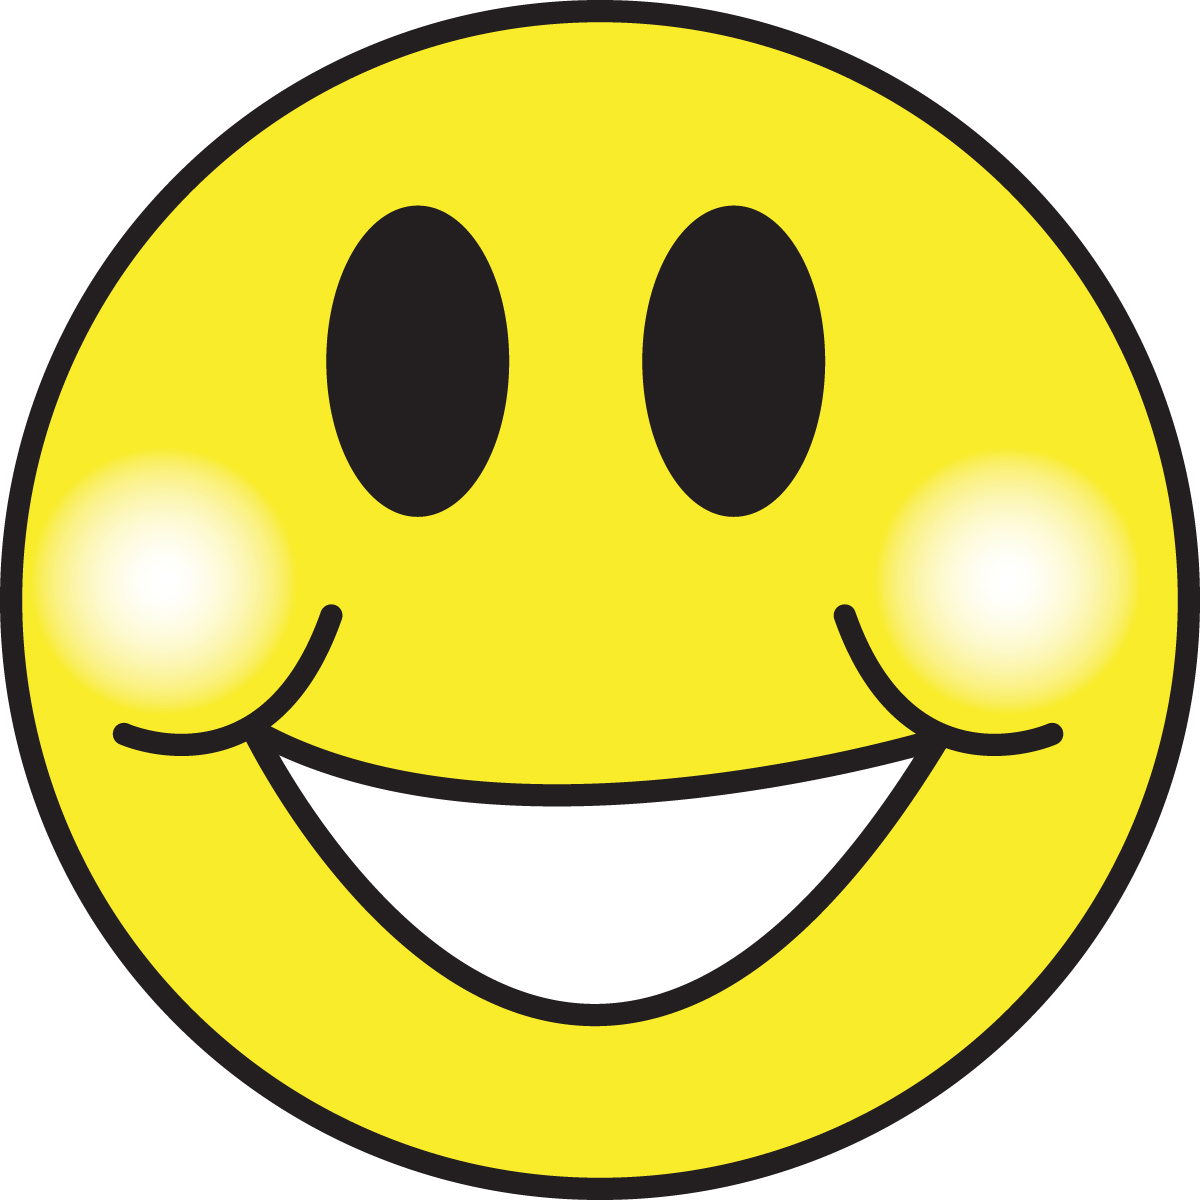 Smiley Face Clip Art Emotions-smiley face clip art emotions-8